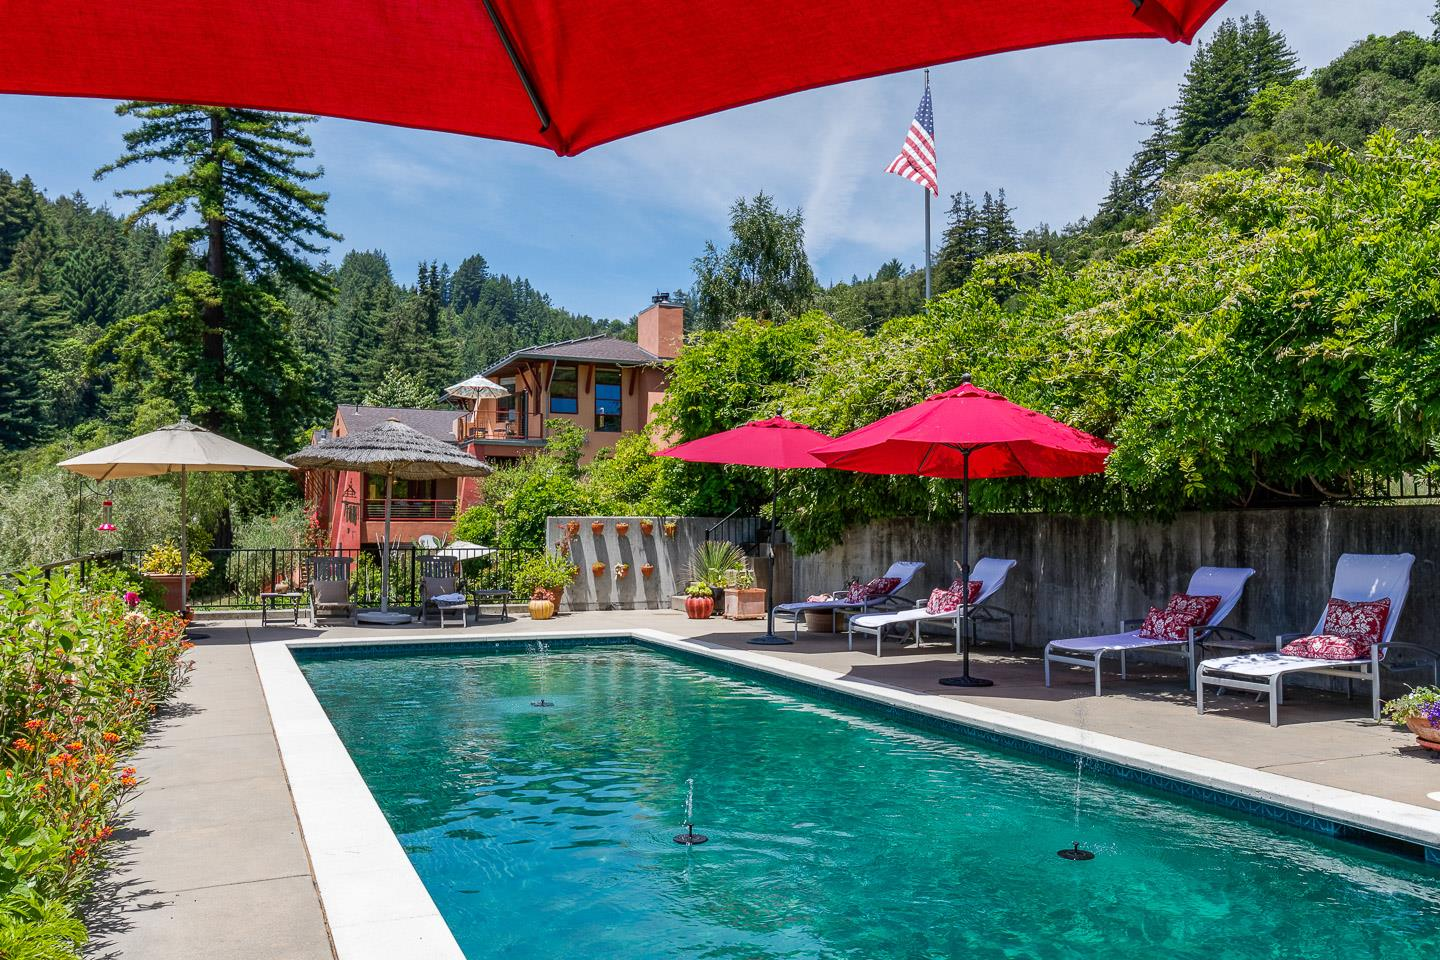 Stunning Tuscan-flavored California modern home/estate in Santa Cruz wine country just minutes from the beach & an easy distance from Silicon Valley. A dramatic entry reveals an open floor plan with expanses of windows that emphasize relaxed indoor/outdoor living. Featuring a 13 x 40 salt water pool, Mugnaini wood fired pizza oven, extensive plantings & fruit trees, plus a 150 tree olive orchard producing commercial quantities of organic, extra-virgin olive oil. Architecturally significant banana-belt home surrounded by redwoods and native oaks, overlooking vineyards, with views to the Santa Lucia Mountains and Ventana Wilderness in the distance. High ceilings, Brazilian cherry, maple, and polished concrete floors, and finest quality fittings & finishes throughout. Airy gourmet kitchen featuring Wolf, Miele, SubZero & Thermador appliances and expansive granite counters. Privacy off a gated, private road, yet close to amenities,things that make Santa Cruz special. APN107-531-10 included